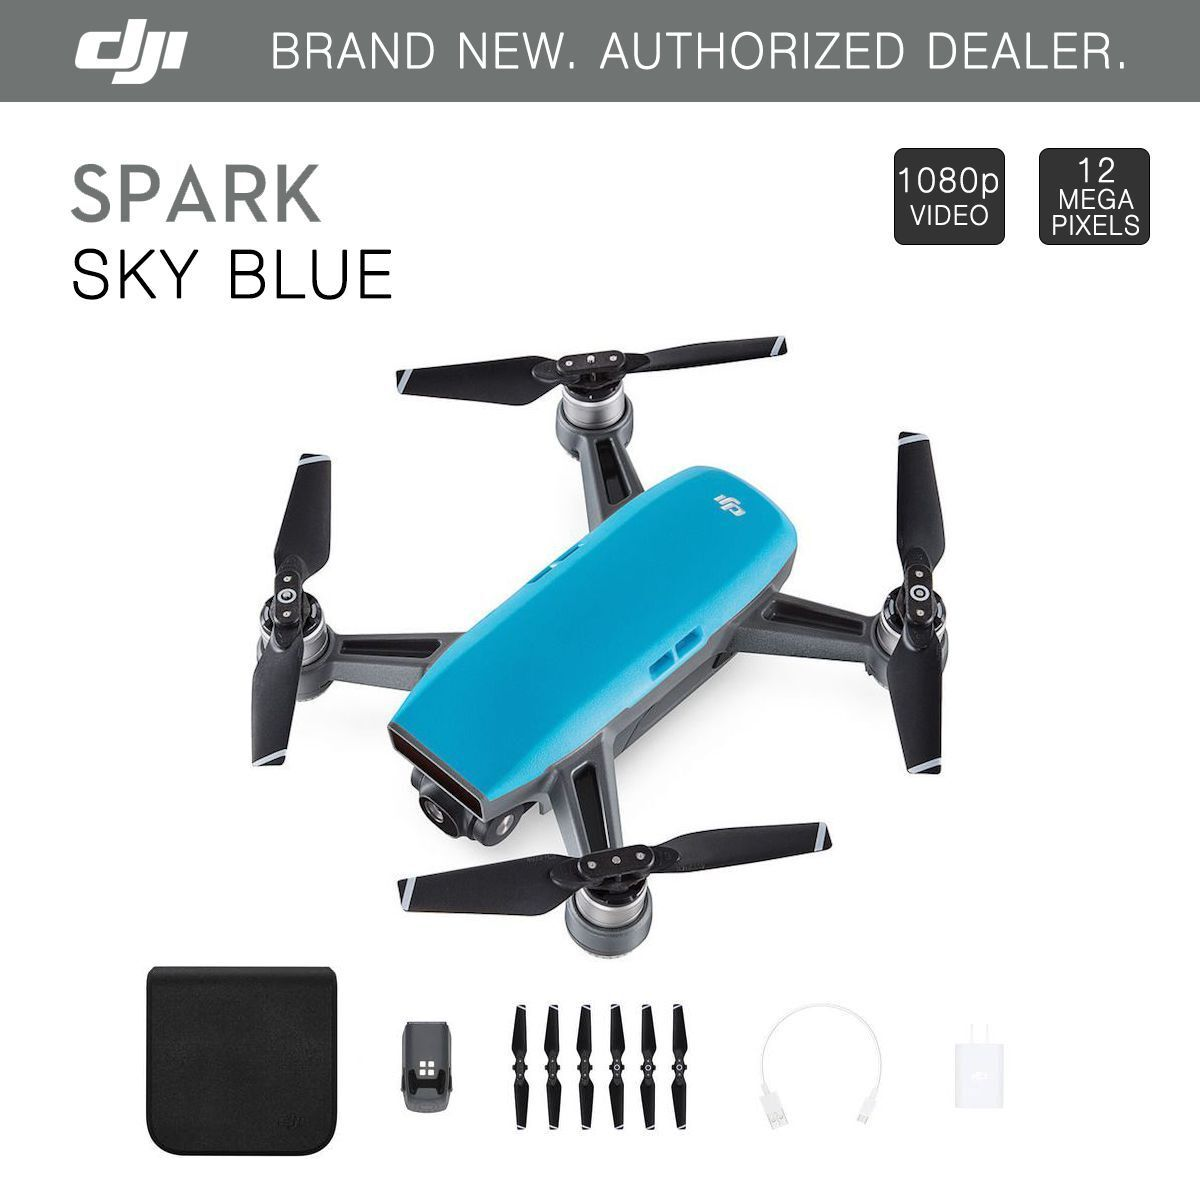 DJI Spark Sky Blue Quadcopter Drone - 12MP 1080p Video